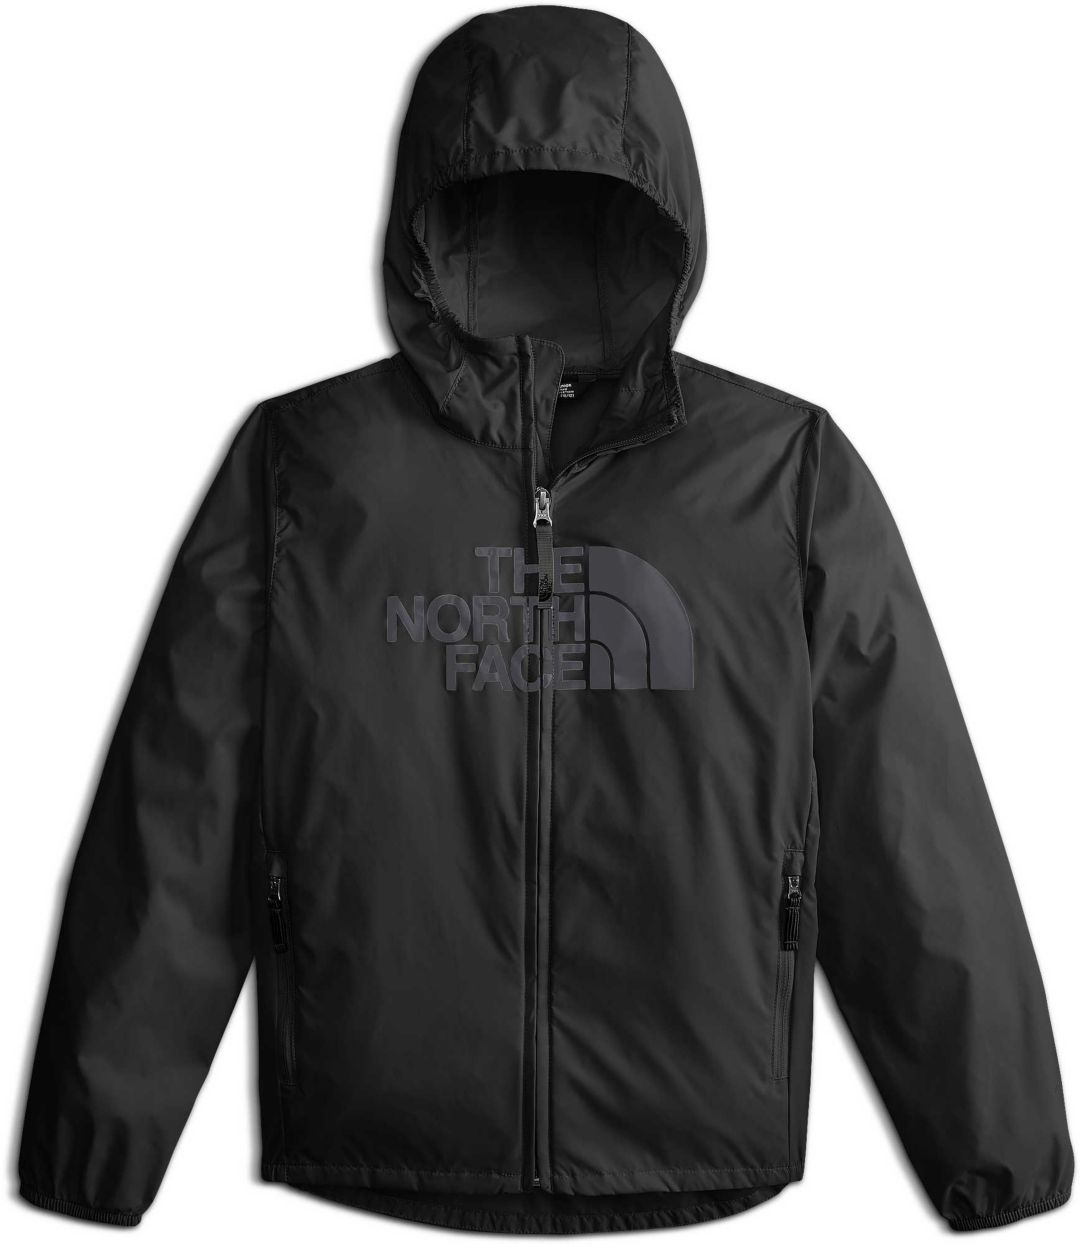 d98aec63a3b The North Face Boy's Flurry Hooded Windbreaker Jacket | DICK'S ...